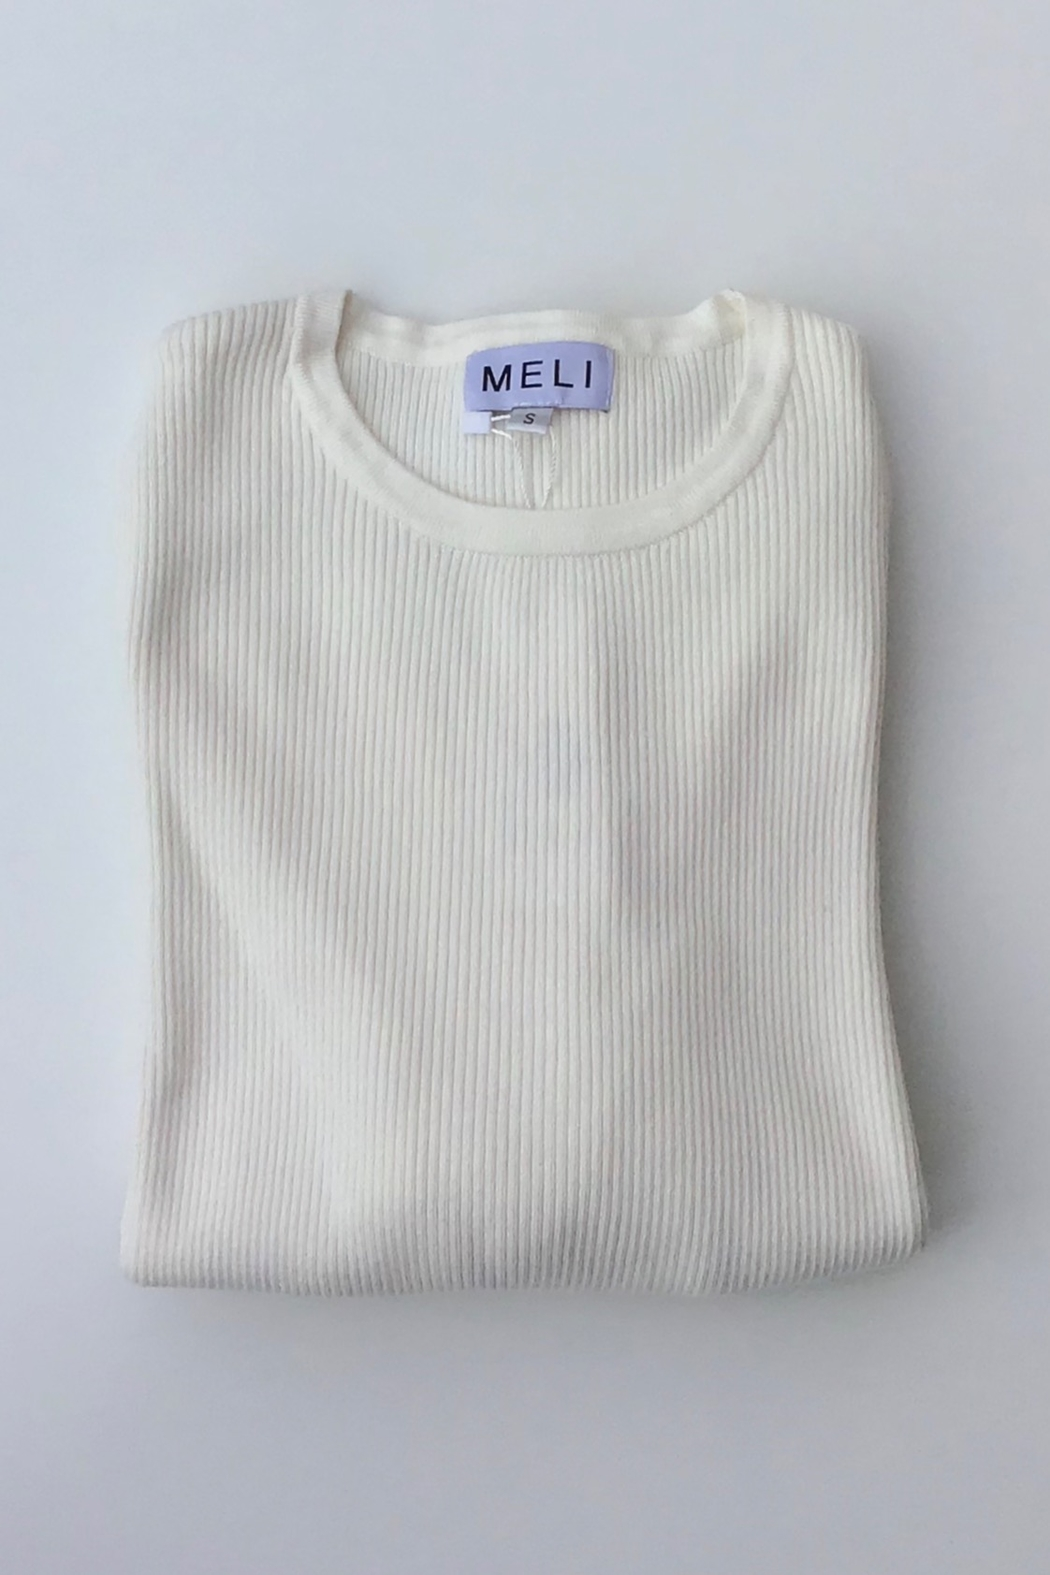 Meli by FAME RIBBED BASIC CREW - Front Cropped Image